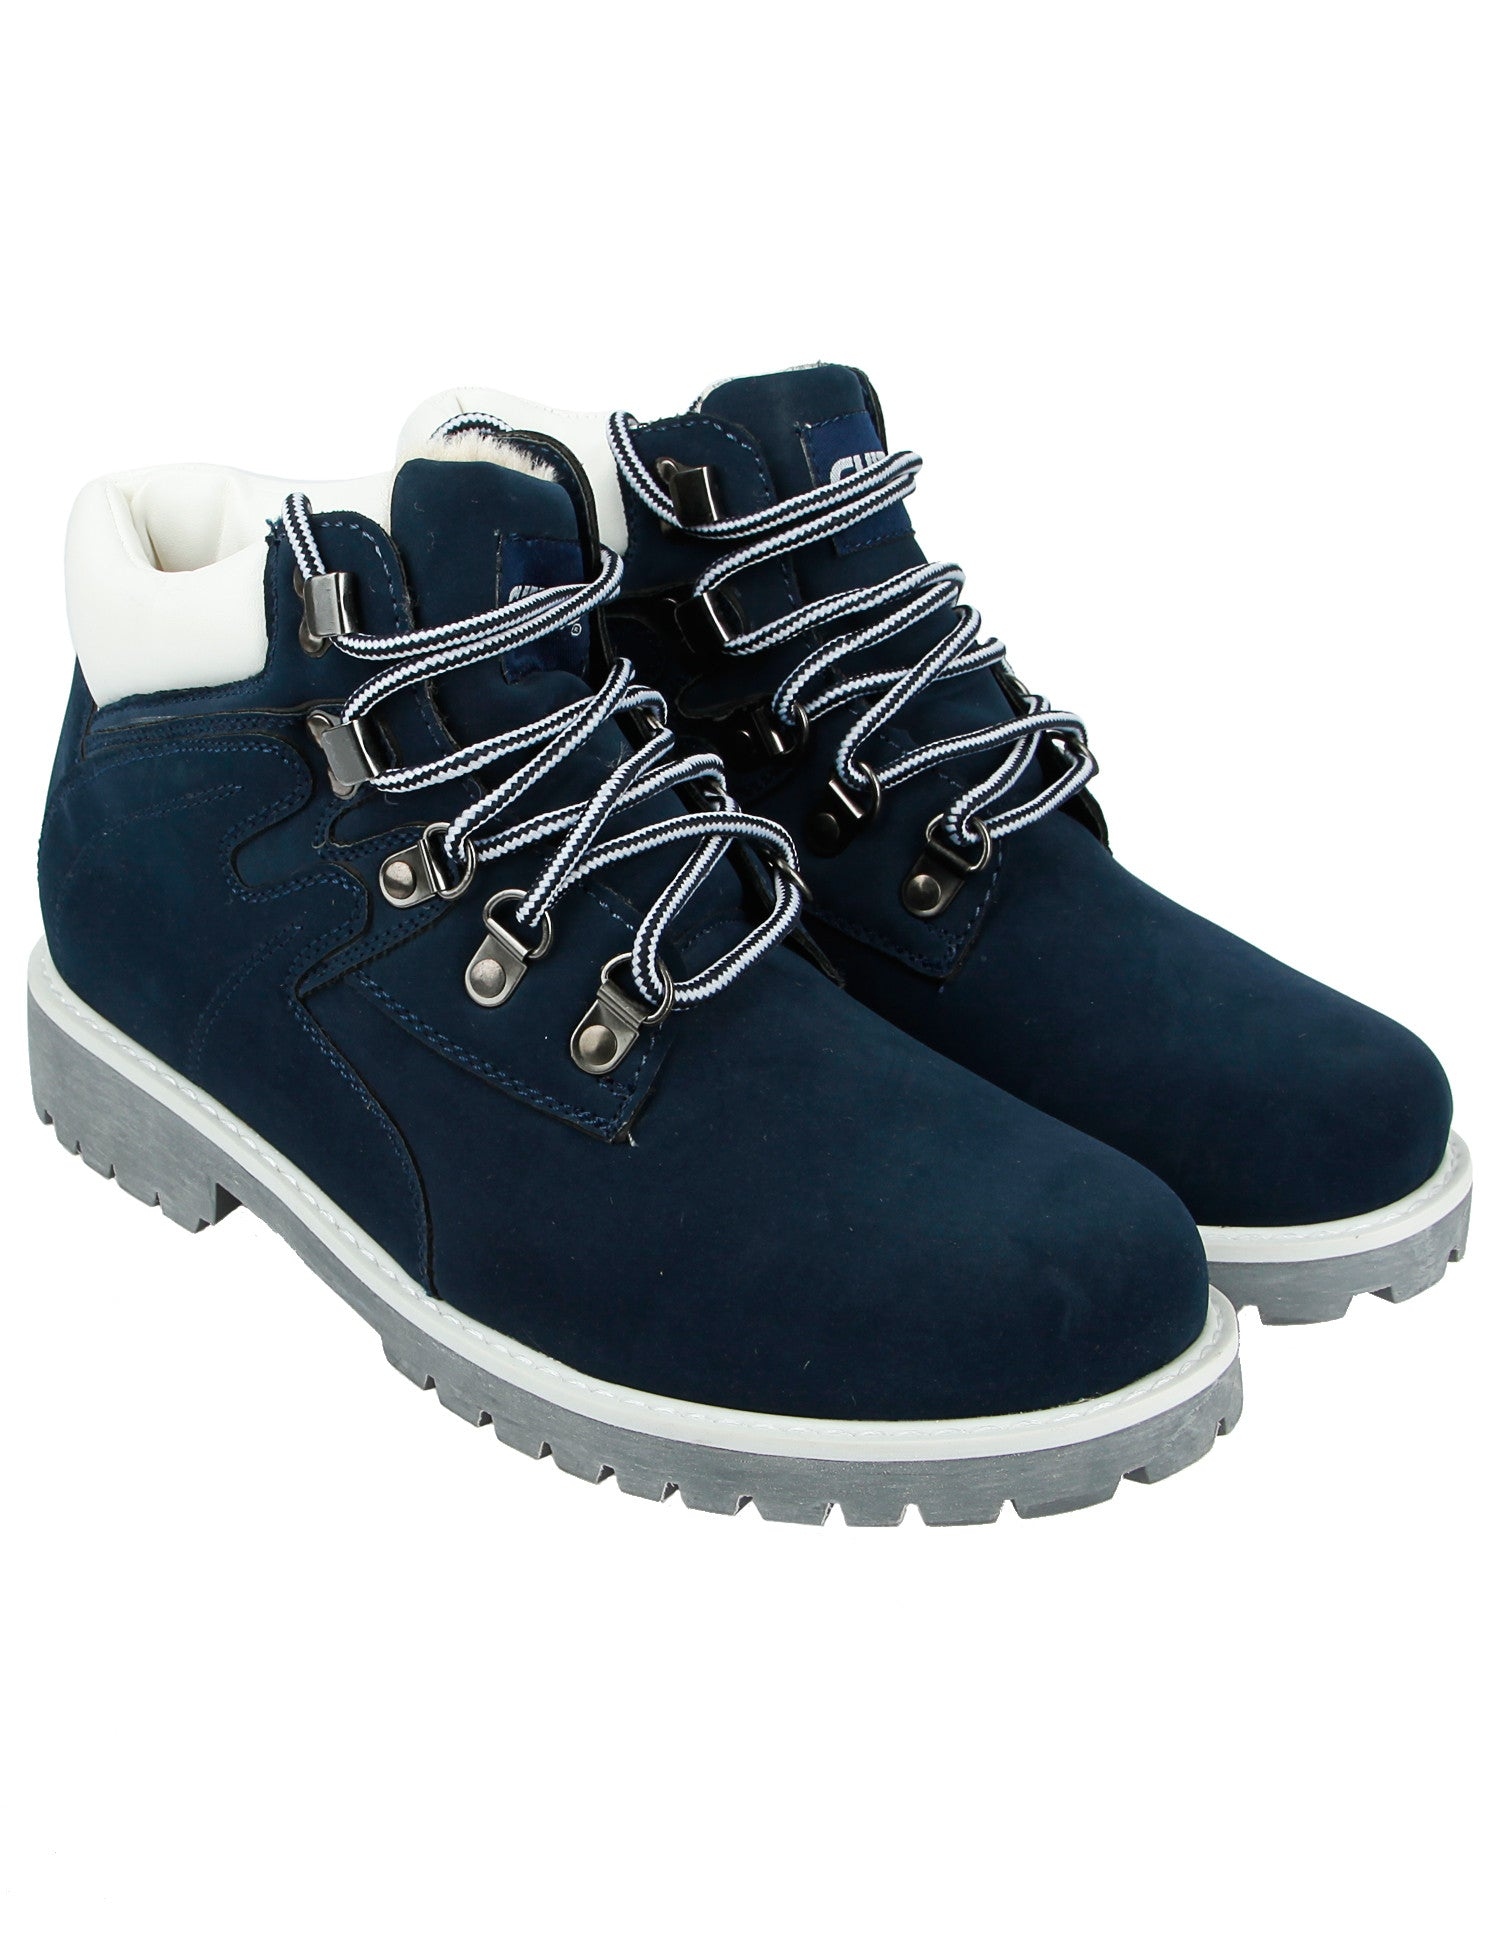 Image of 9B817-9W Shoes Blue